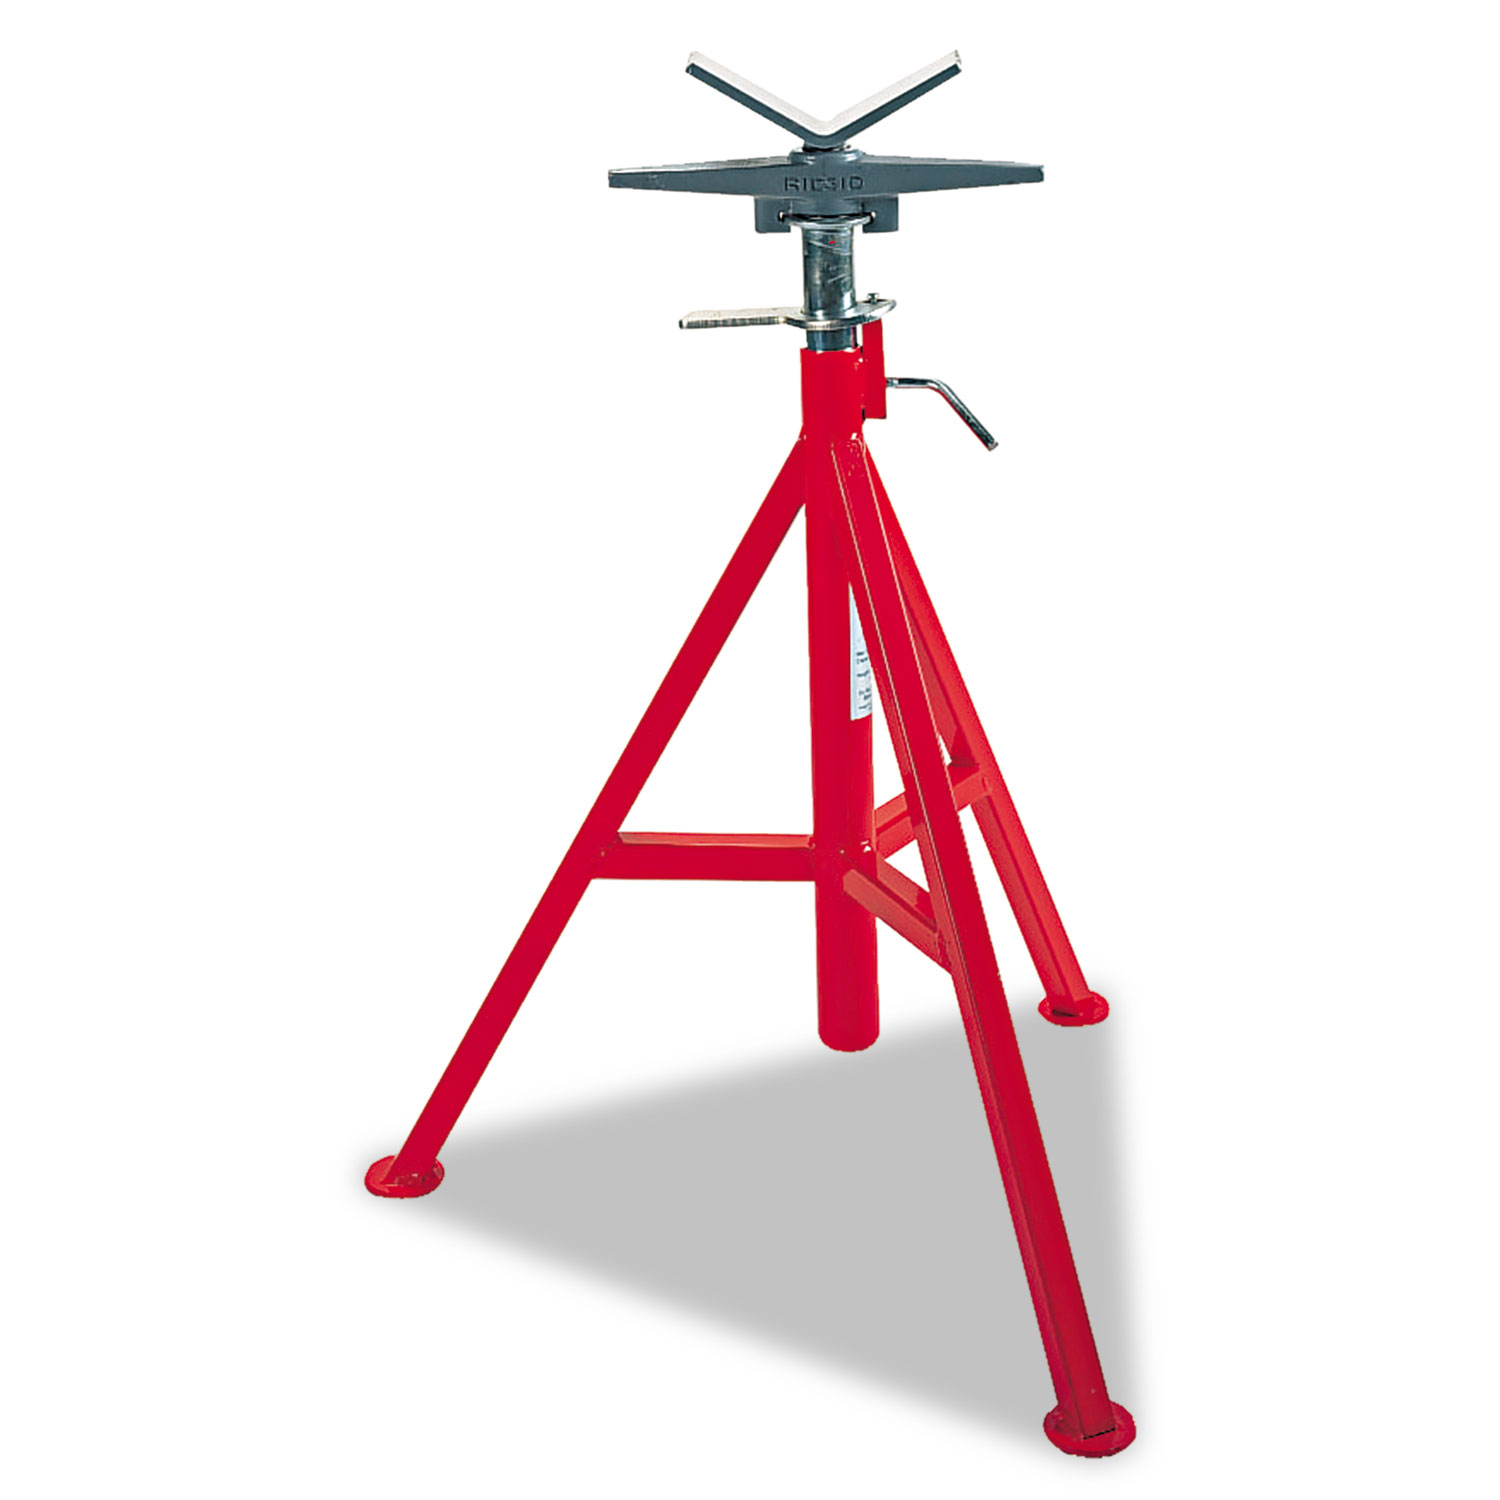 VJ-98 Low Pipe Stand, 20 to 38 High, Red